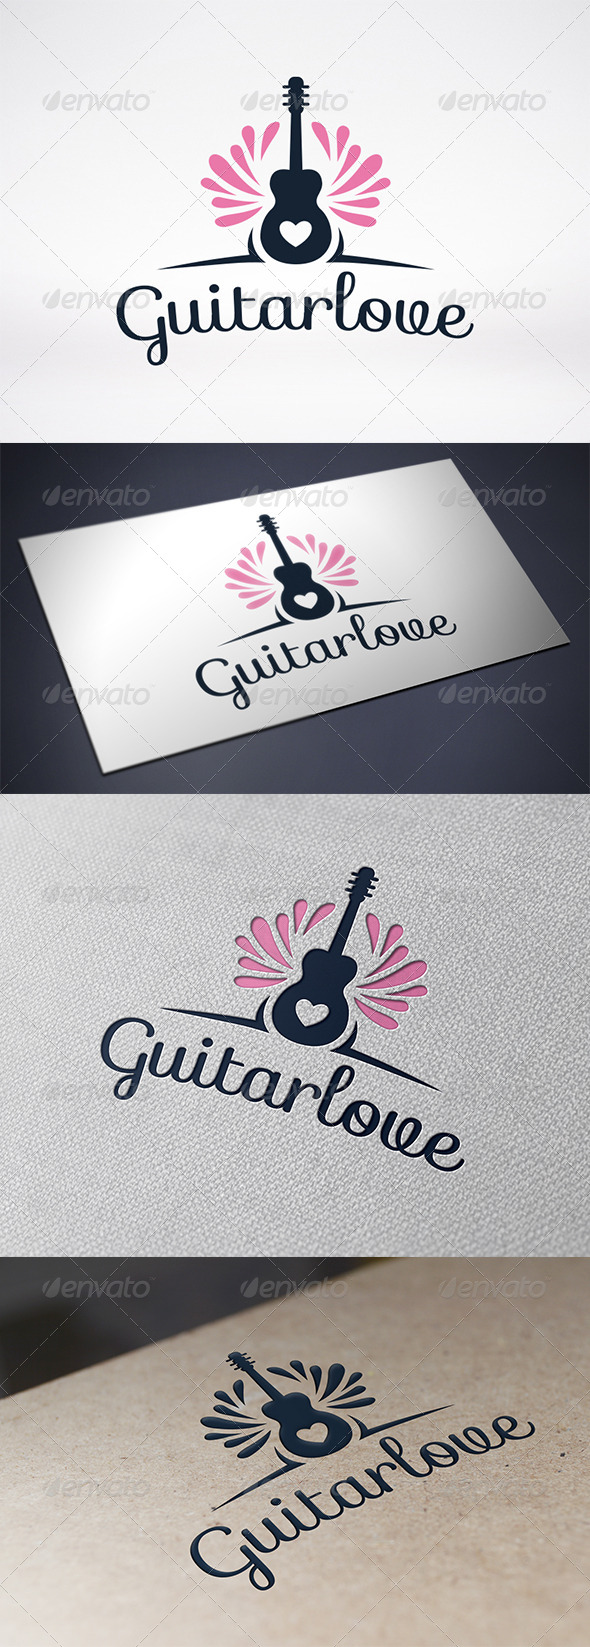 Guitar Love Logo Template - Objects Logo Templates